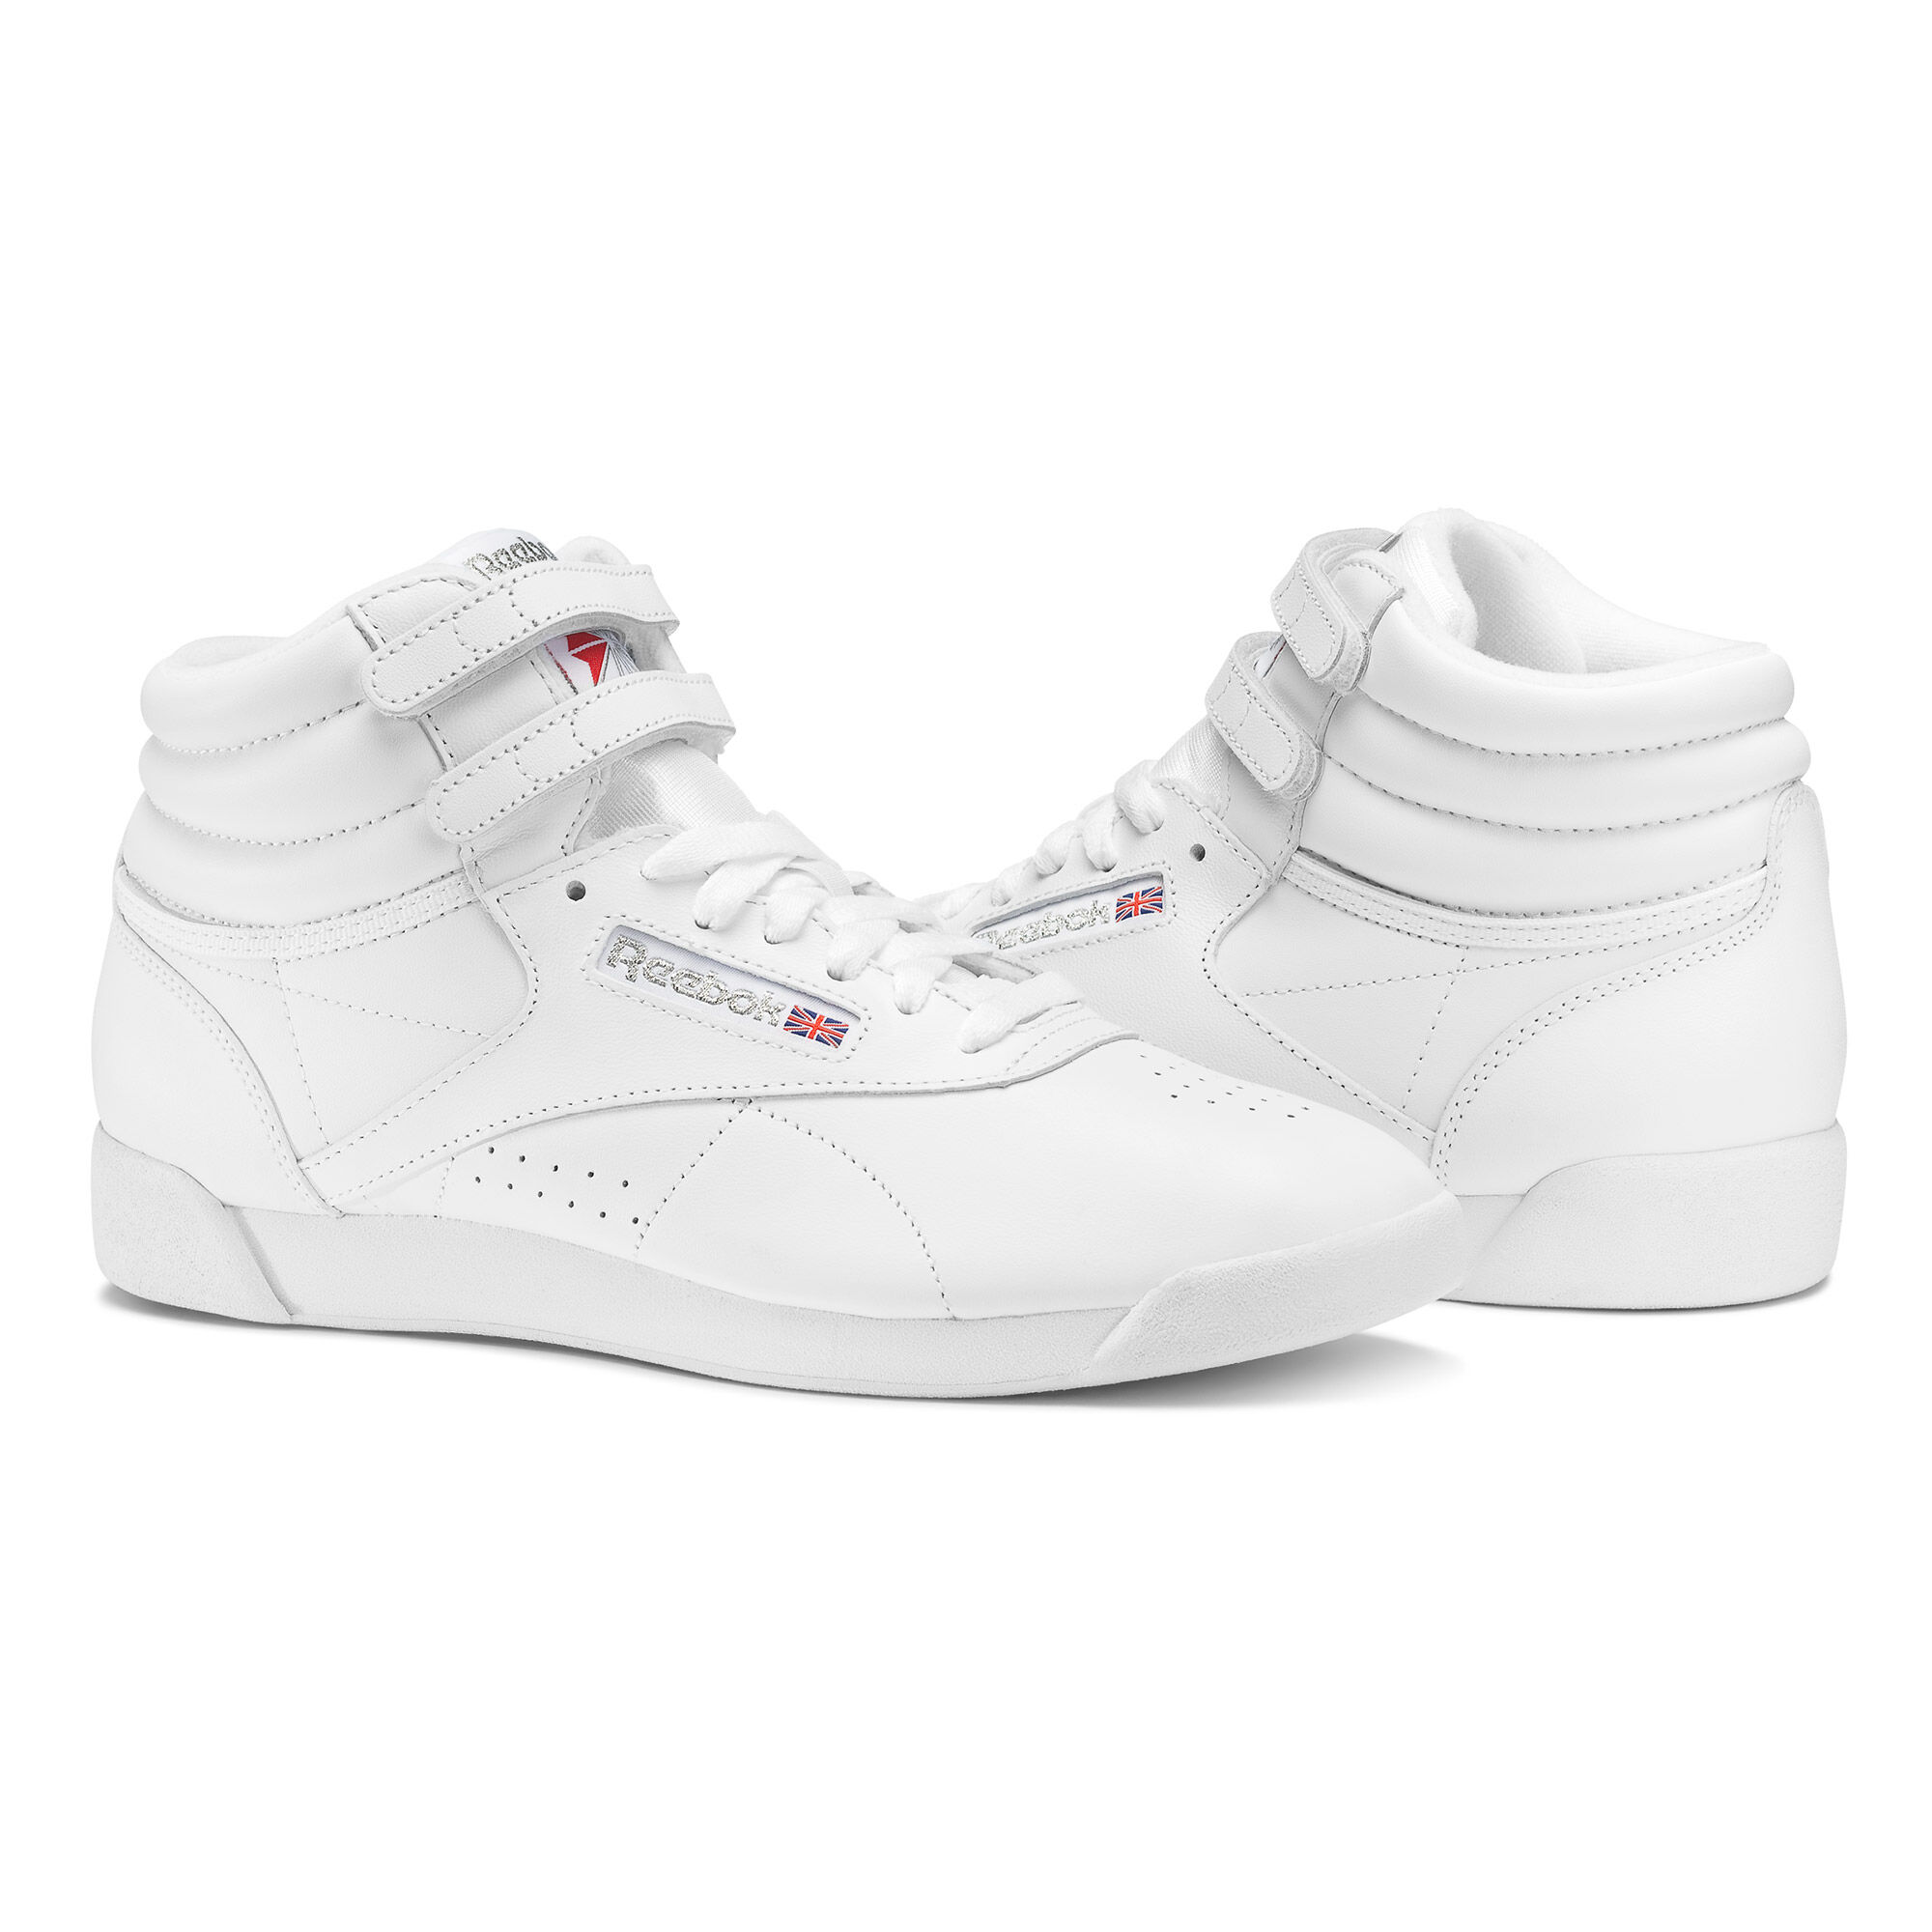 Reebok - Freestyle Hi White / Silver 2431